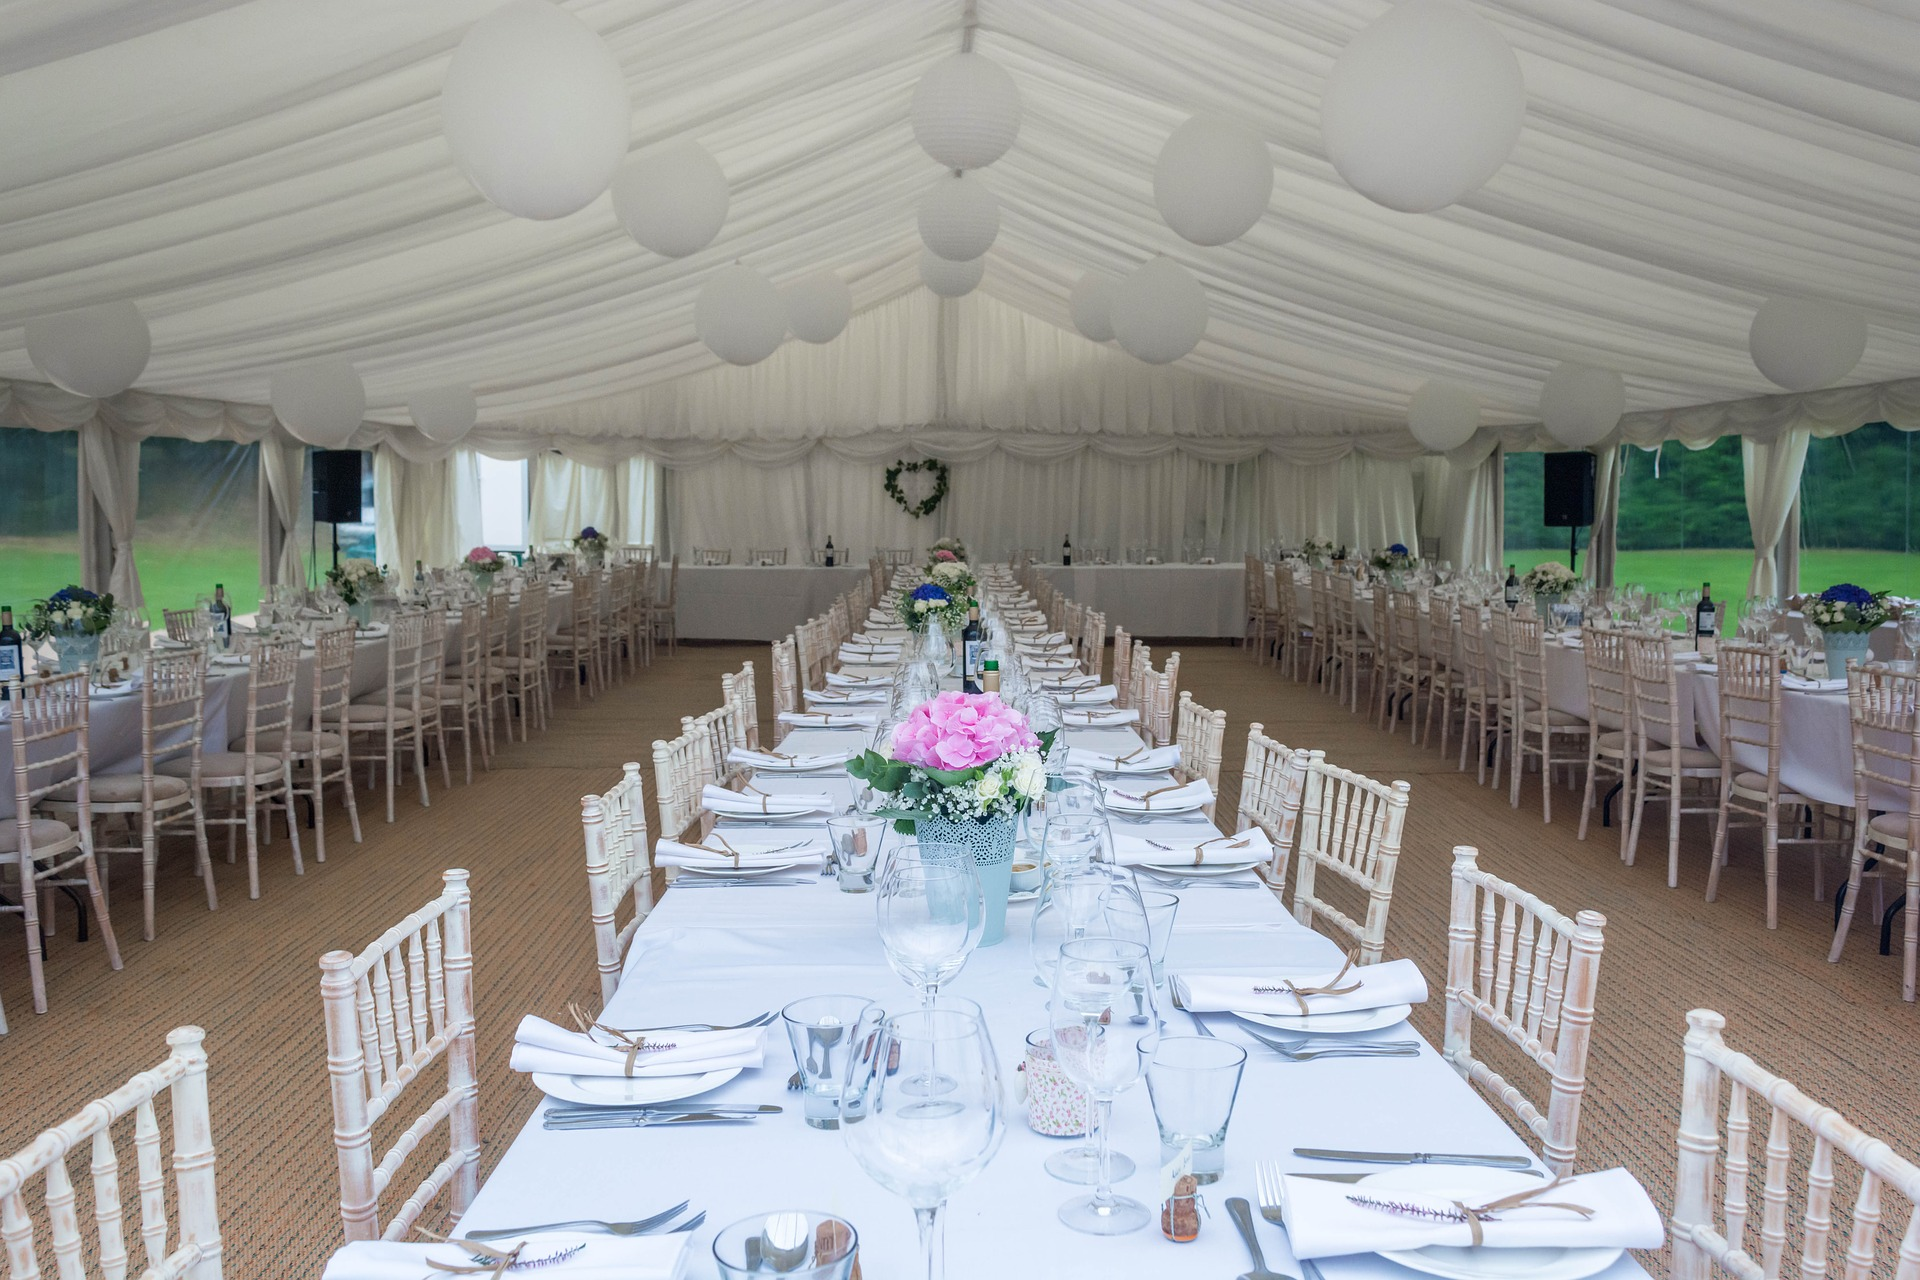 view of inside of a white tent with long tables set up for wedding reception.